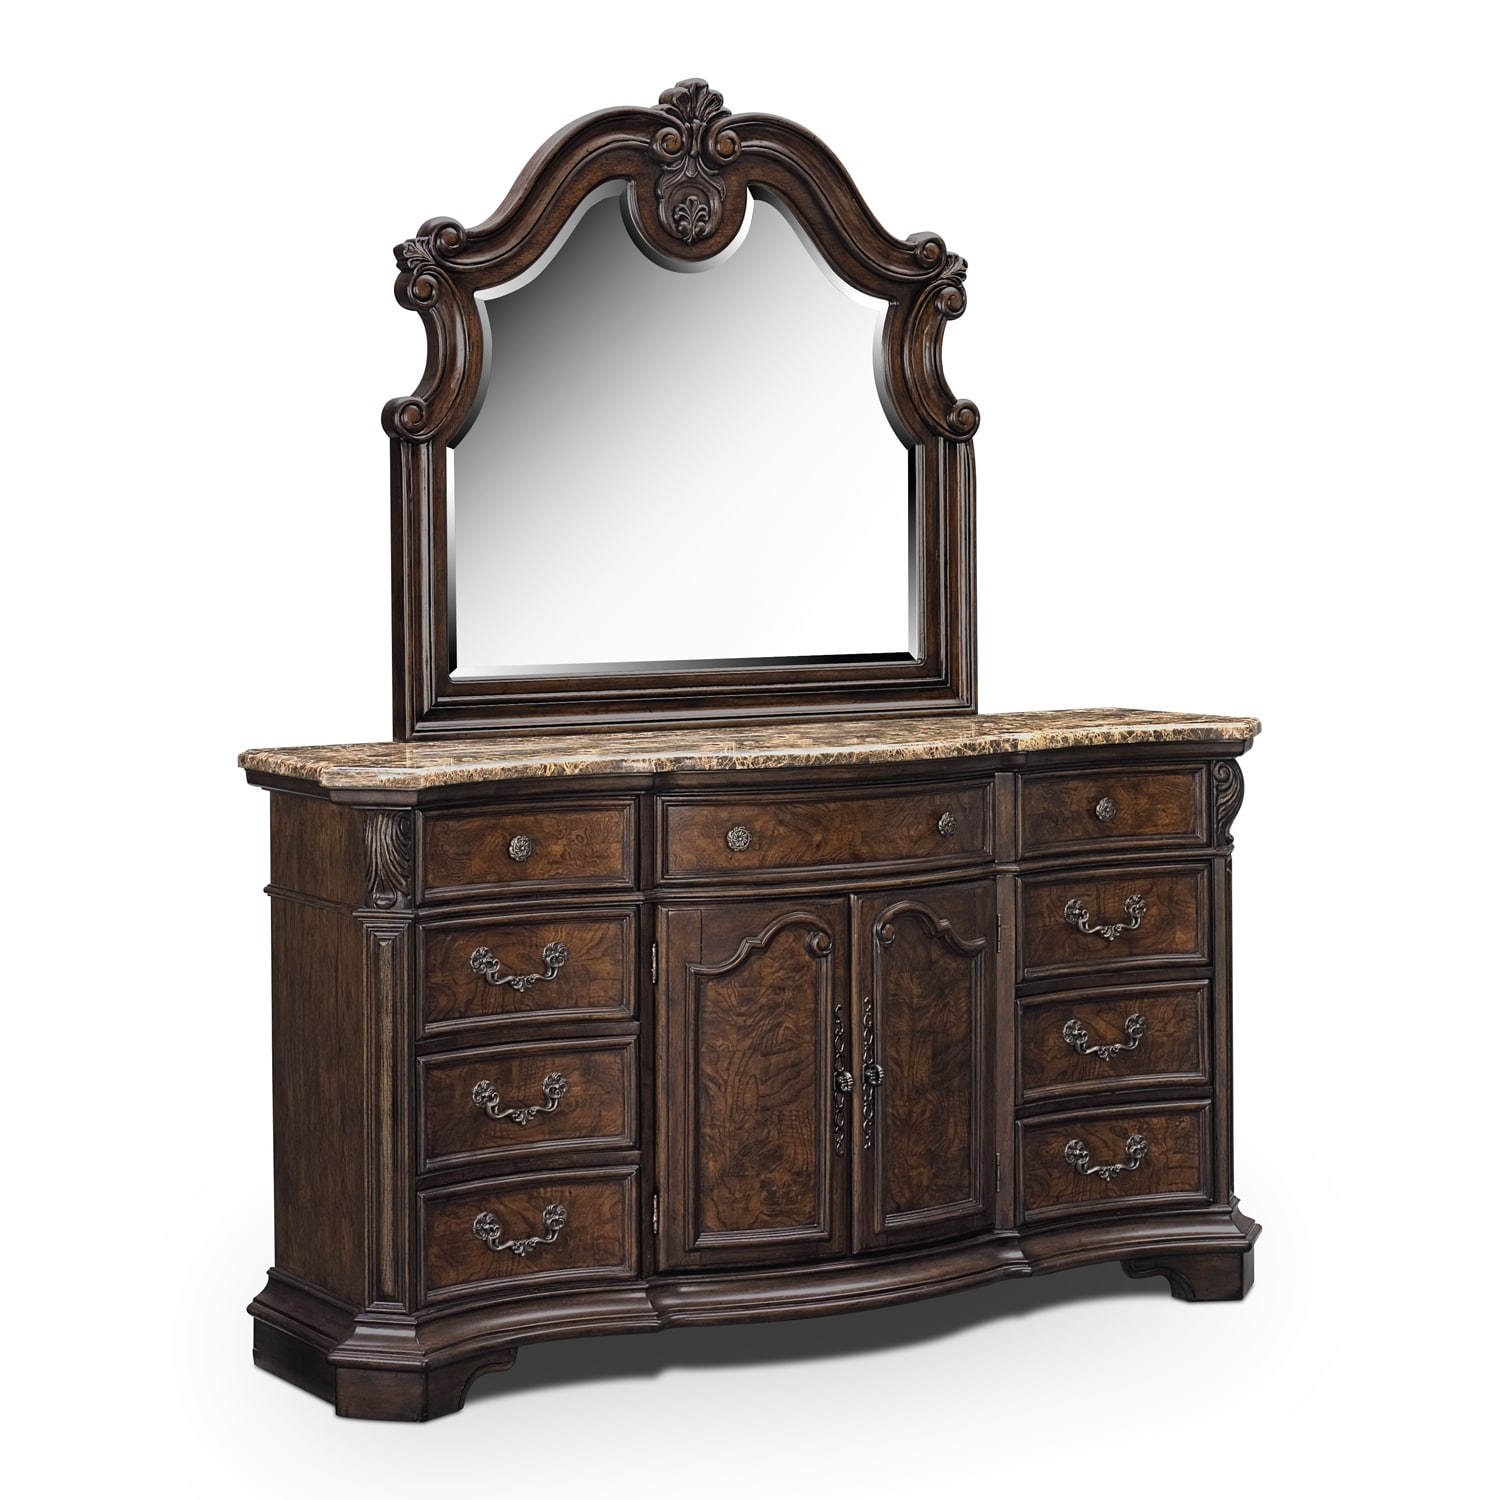 Bedroom Furniture - Monticello Dresser and Mirror